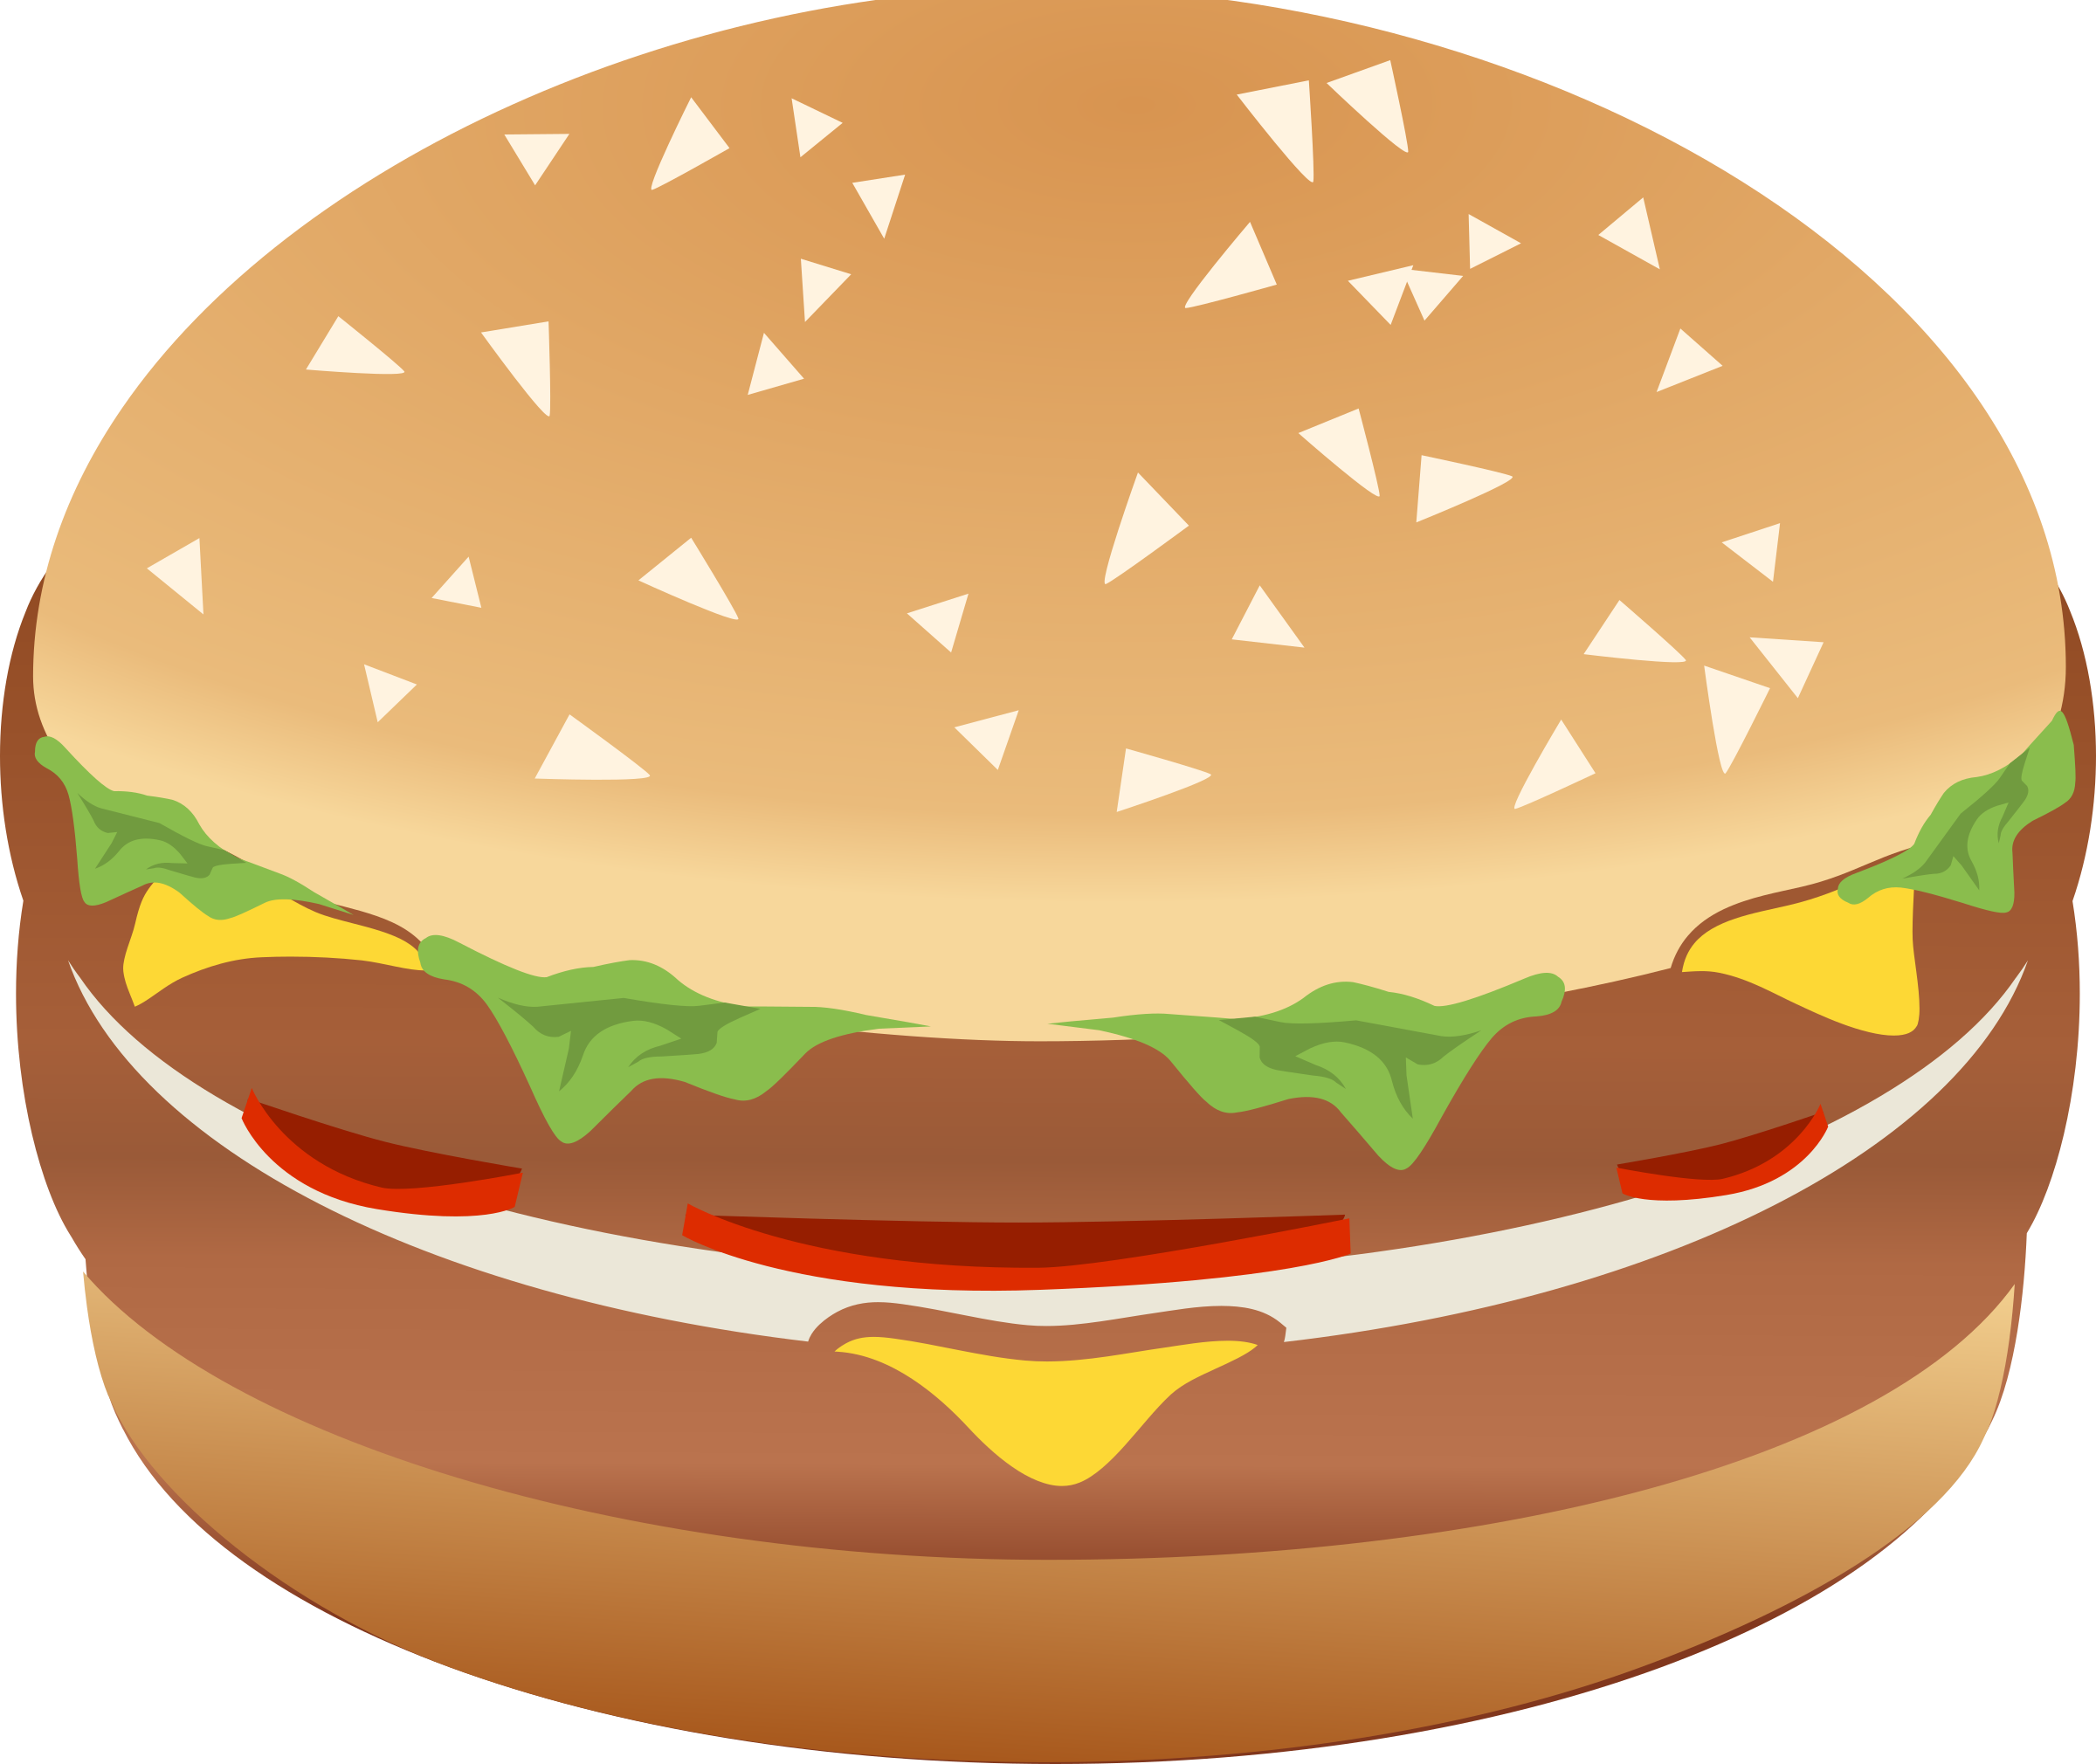 Turkey burger clipart clip art stock 28+ Collection of Burger Clipart Images | High quality, free ... clip art stock